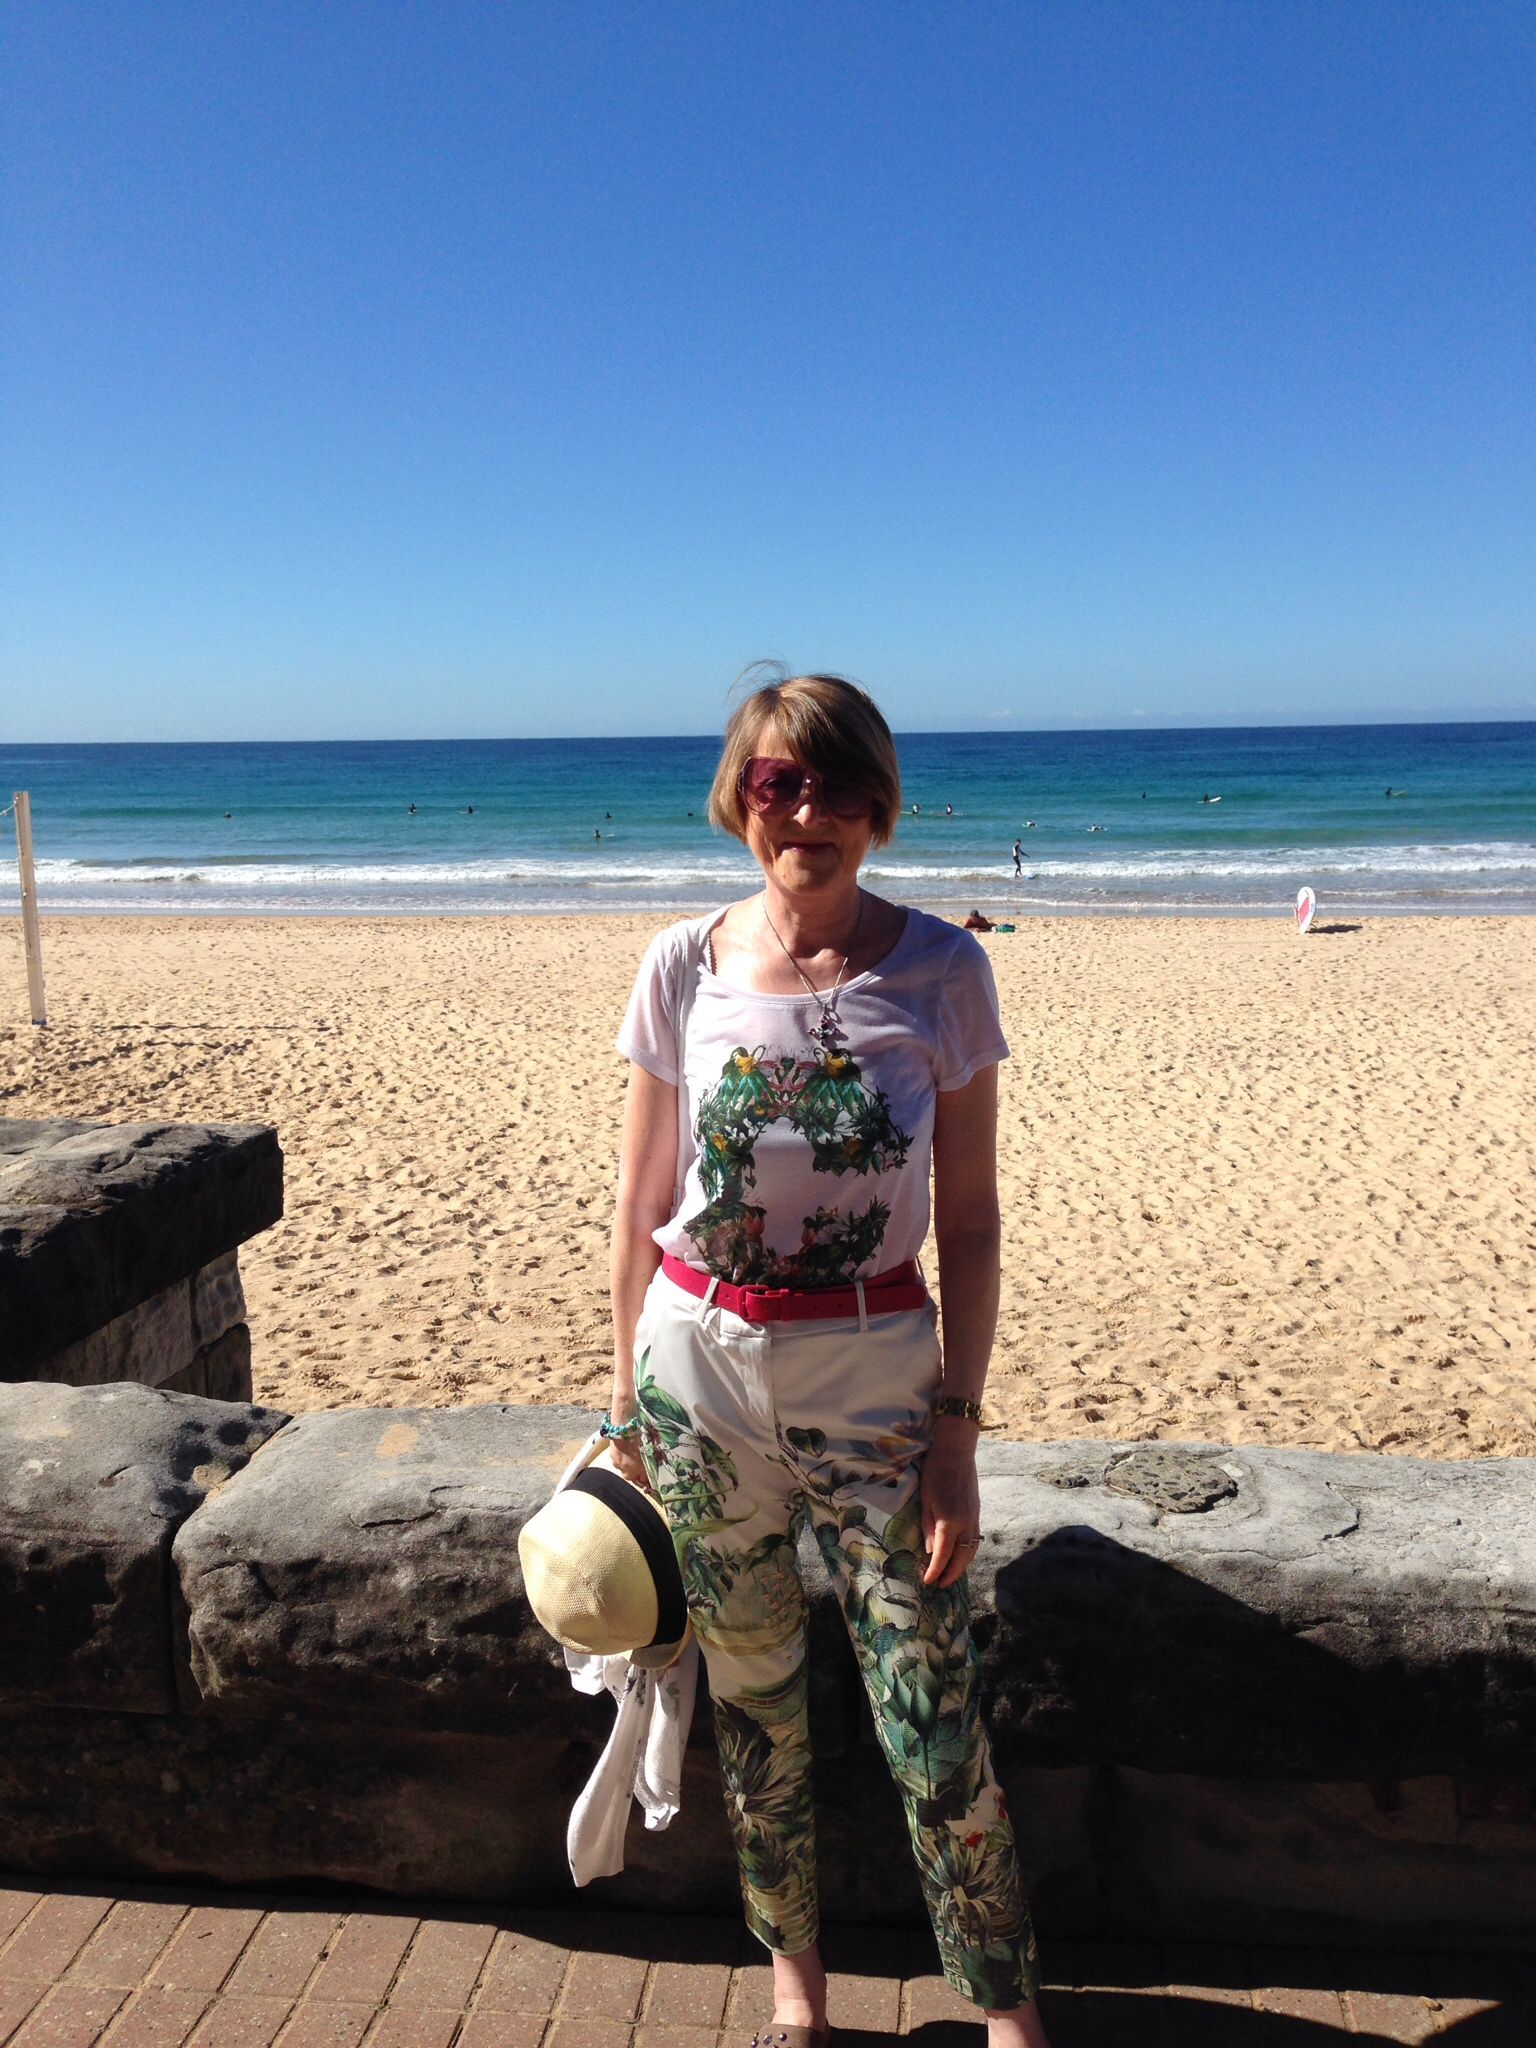 Me at Manly Beach